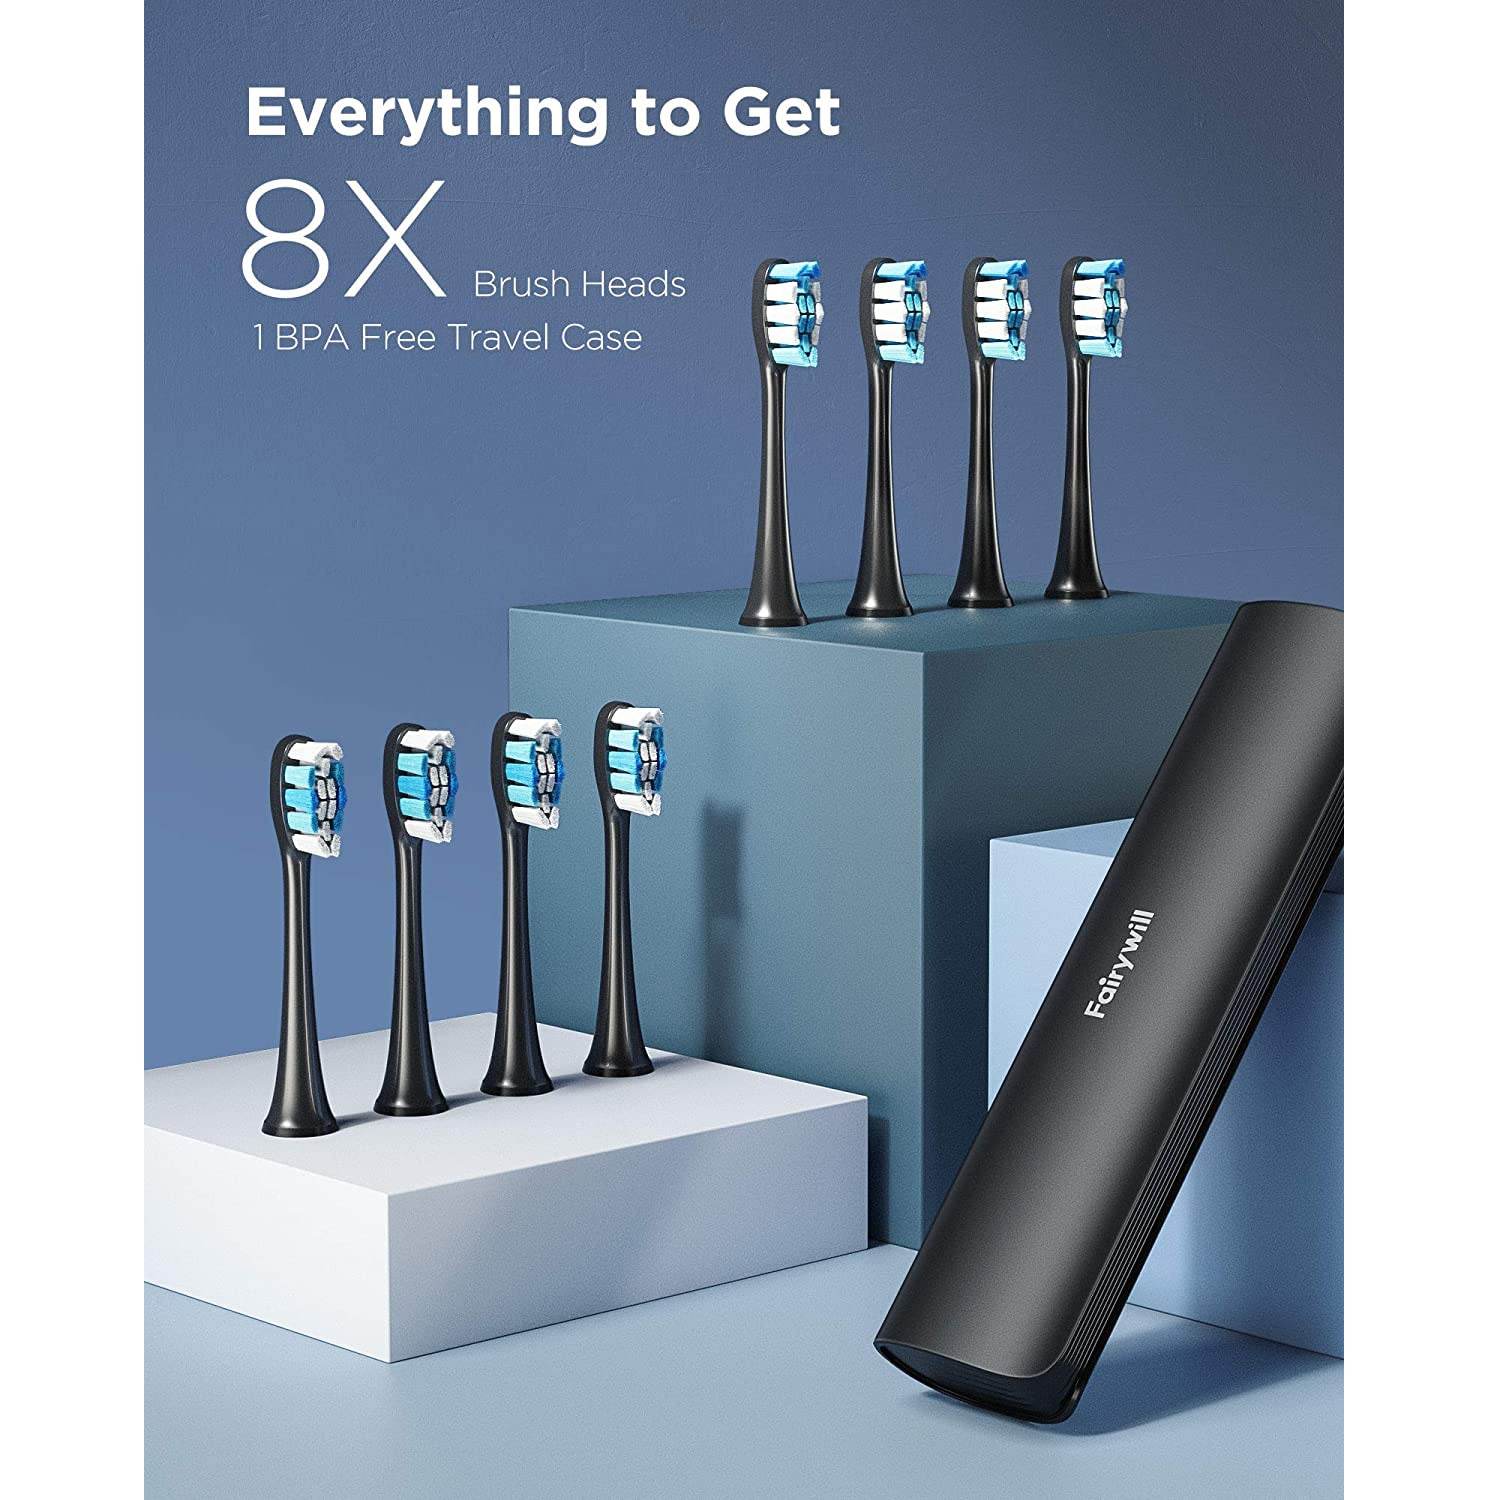 Fairywill Electric Toothbrush P80 Smart Timer Quiet IPX7 Waterproof Fast Charging 8 Replacement Heads 5 Modes with Travel Case enlarge